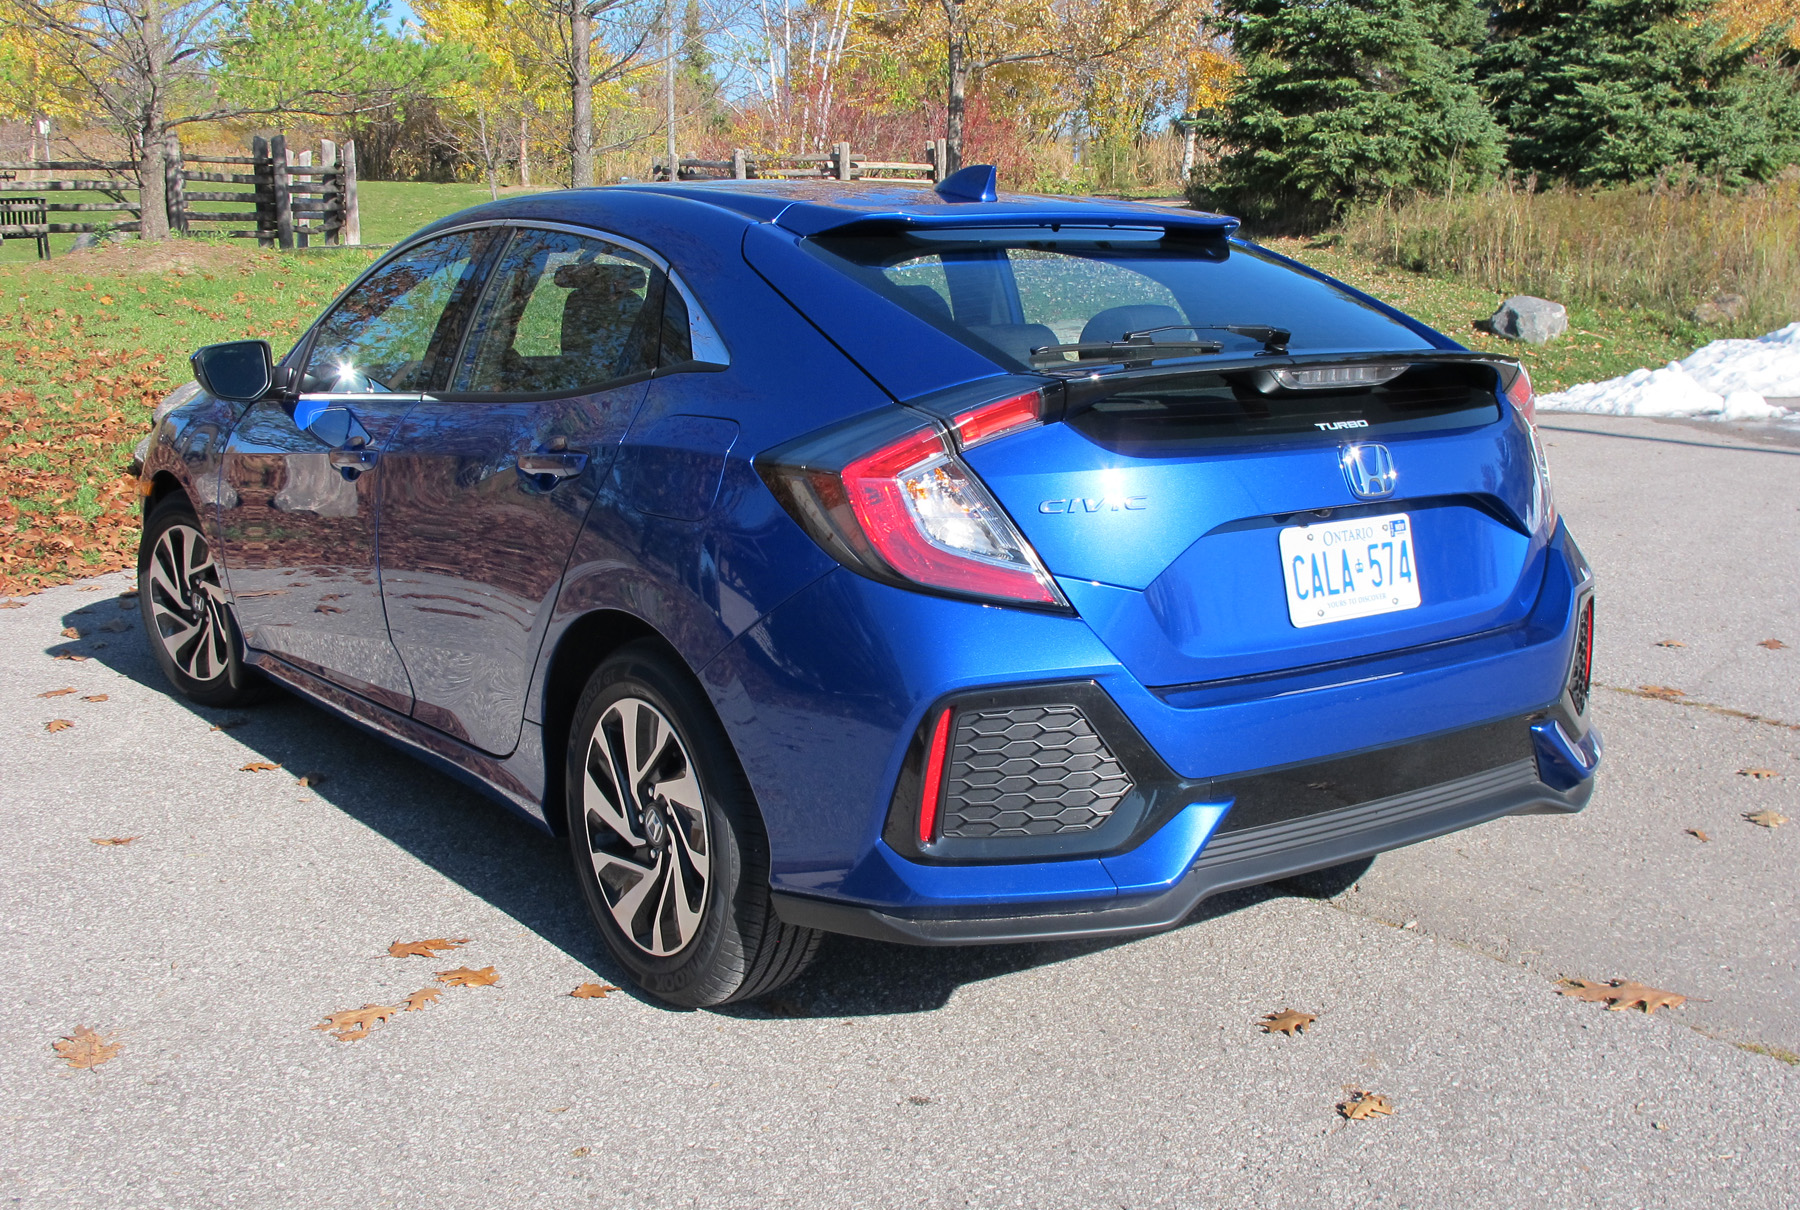 The Highly Styled Rear Of The 2017 Civic Hatchback Has Two Spoilers To  Decrease Airflow Drag. H